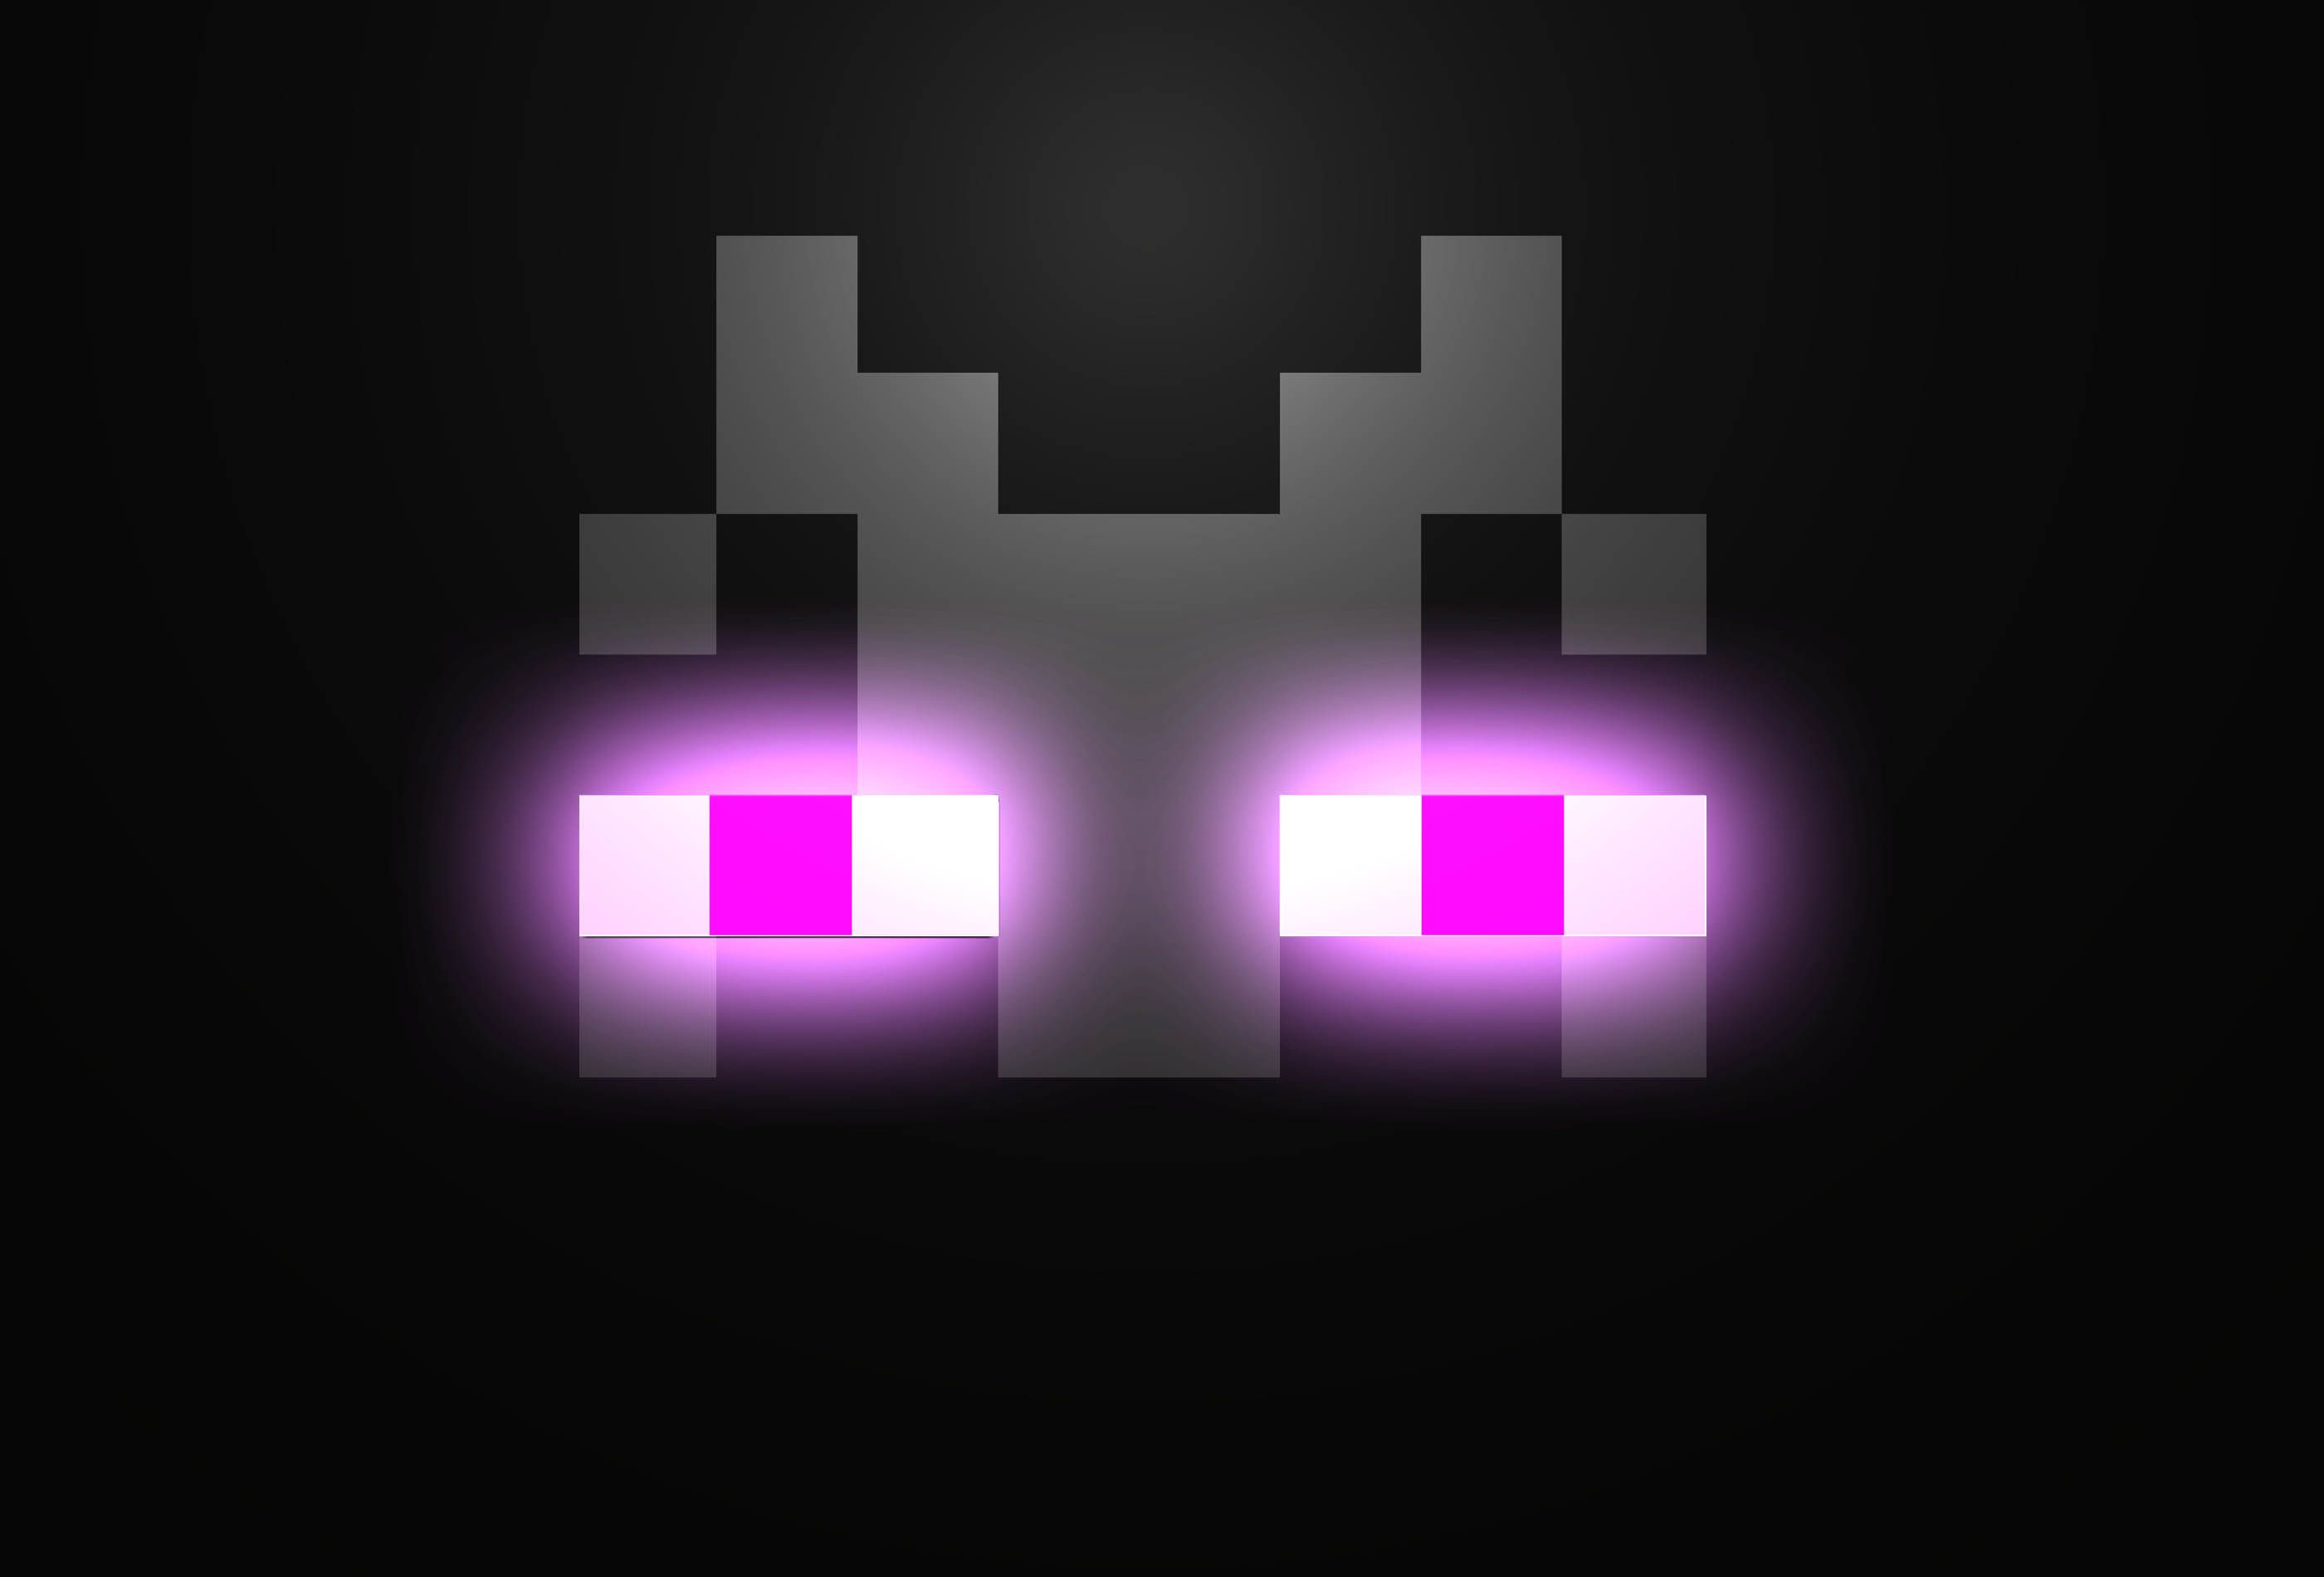 Minecraft Enderman Wallpaper Hd | Wallpager. | Christy Ann ...